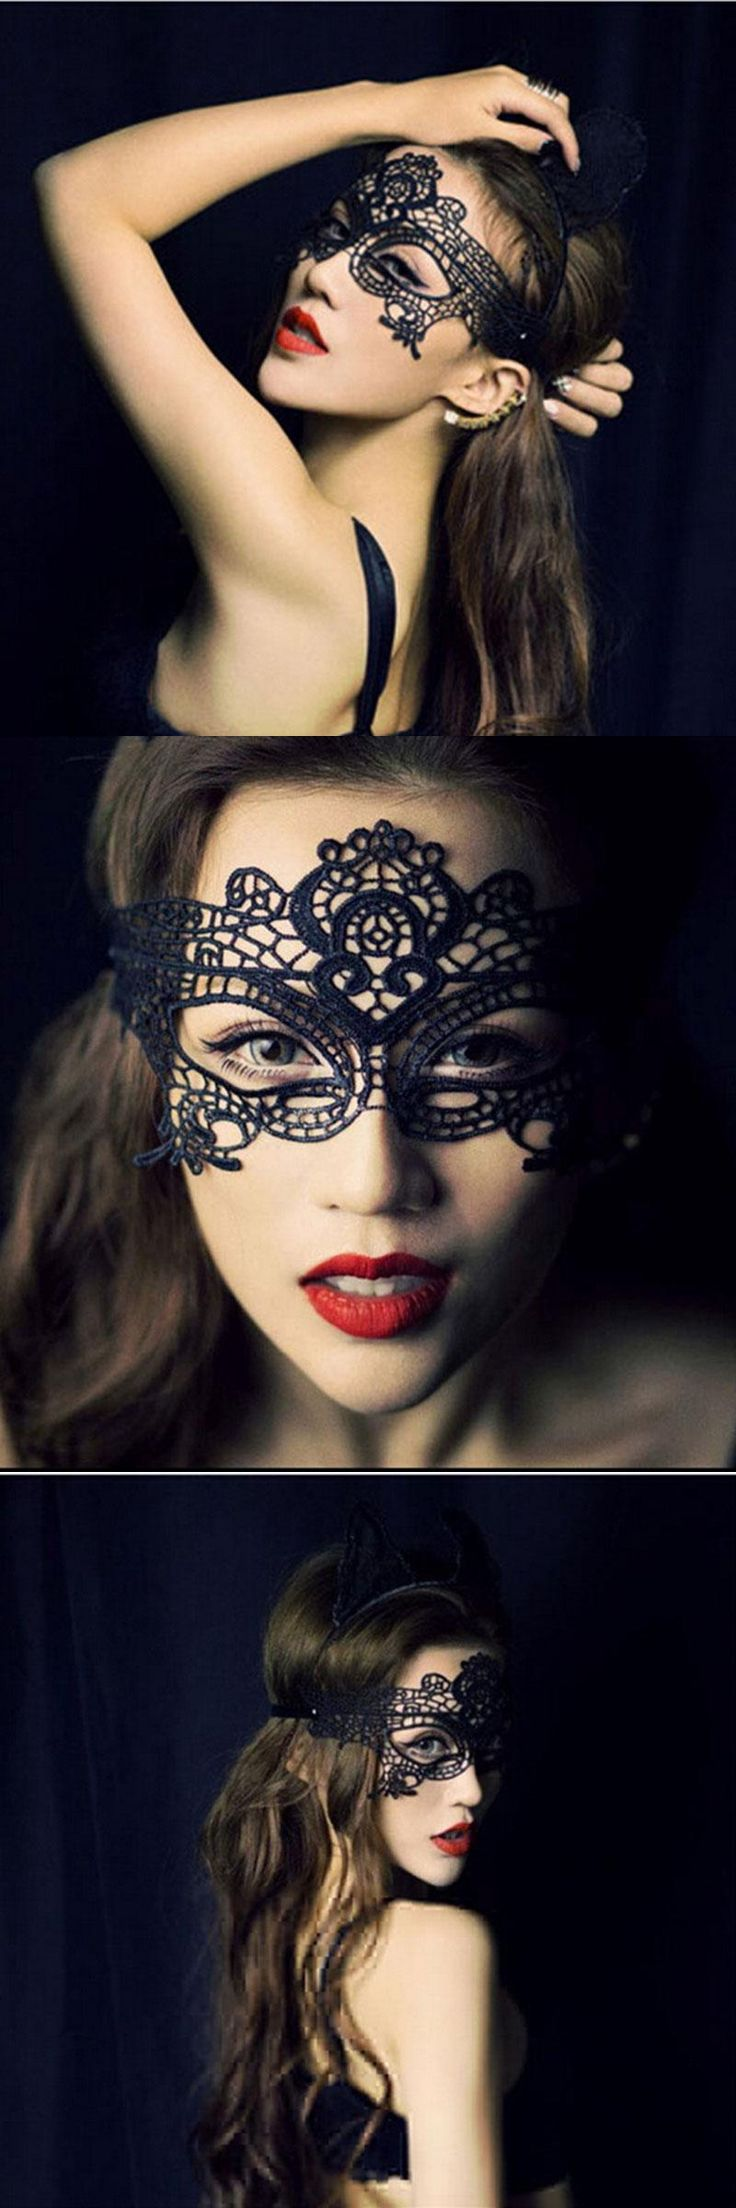 [Visit to Buy] New Girls Women Black Sexy Lady Lace Mask Cutout Eye Mask for Masquerade Party Fancy Dress Costum #Advertisement